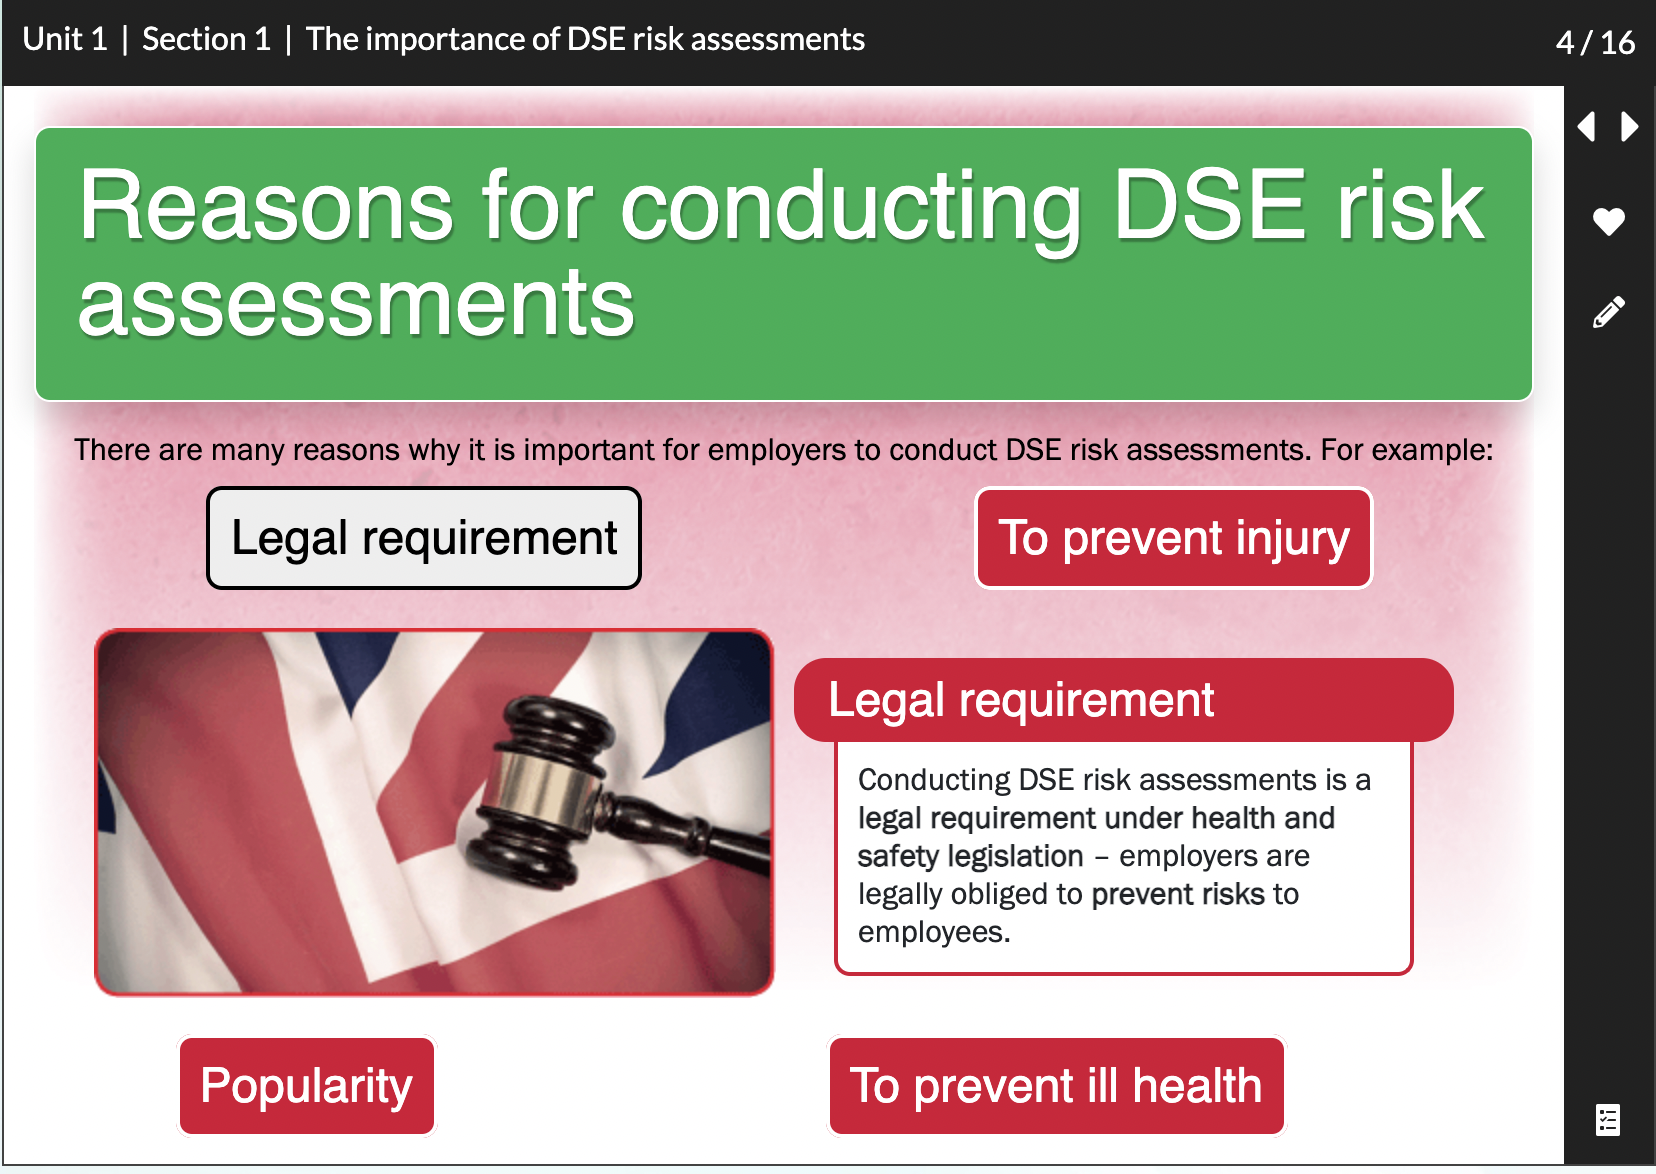 The importance of DSE risk assessments